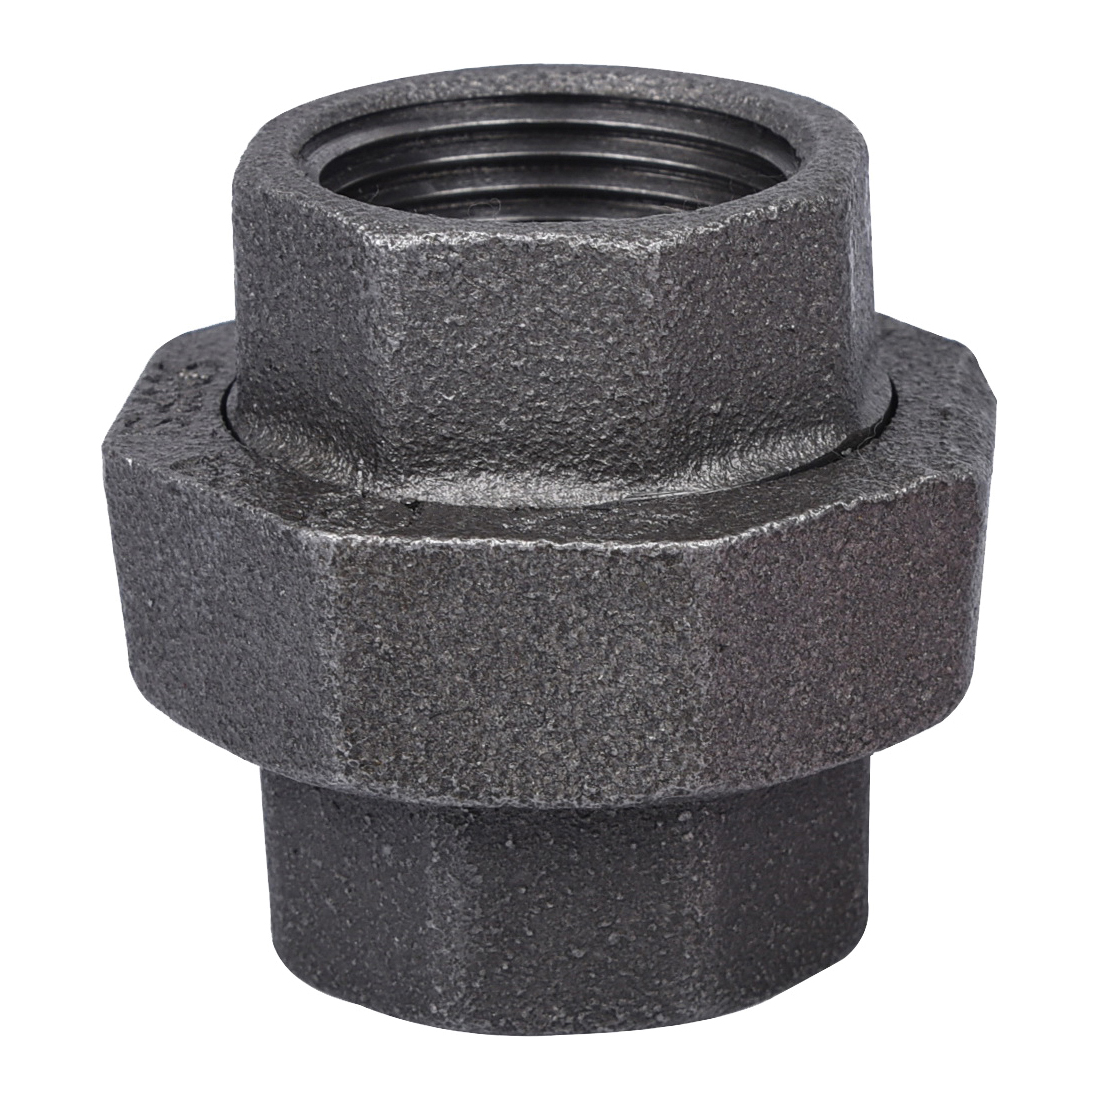 Picture of ProSource 34B-1B Black Union, 1 in, Threaded, 150 psi Pressure